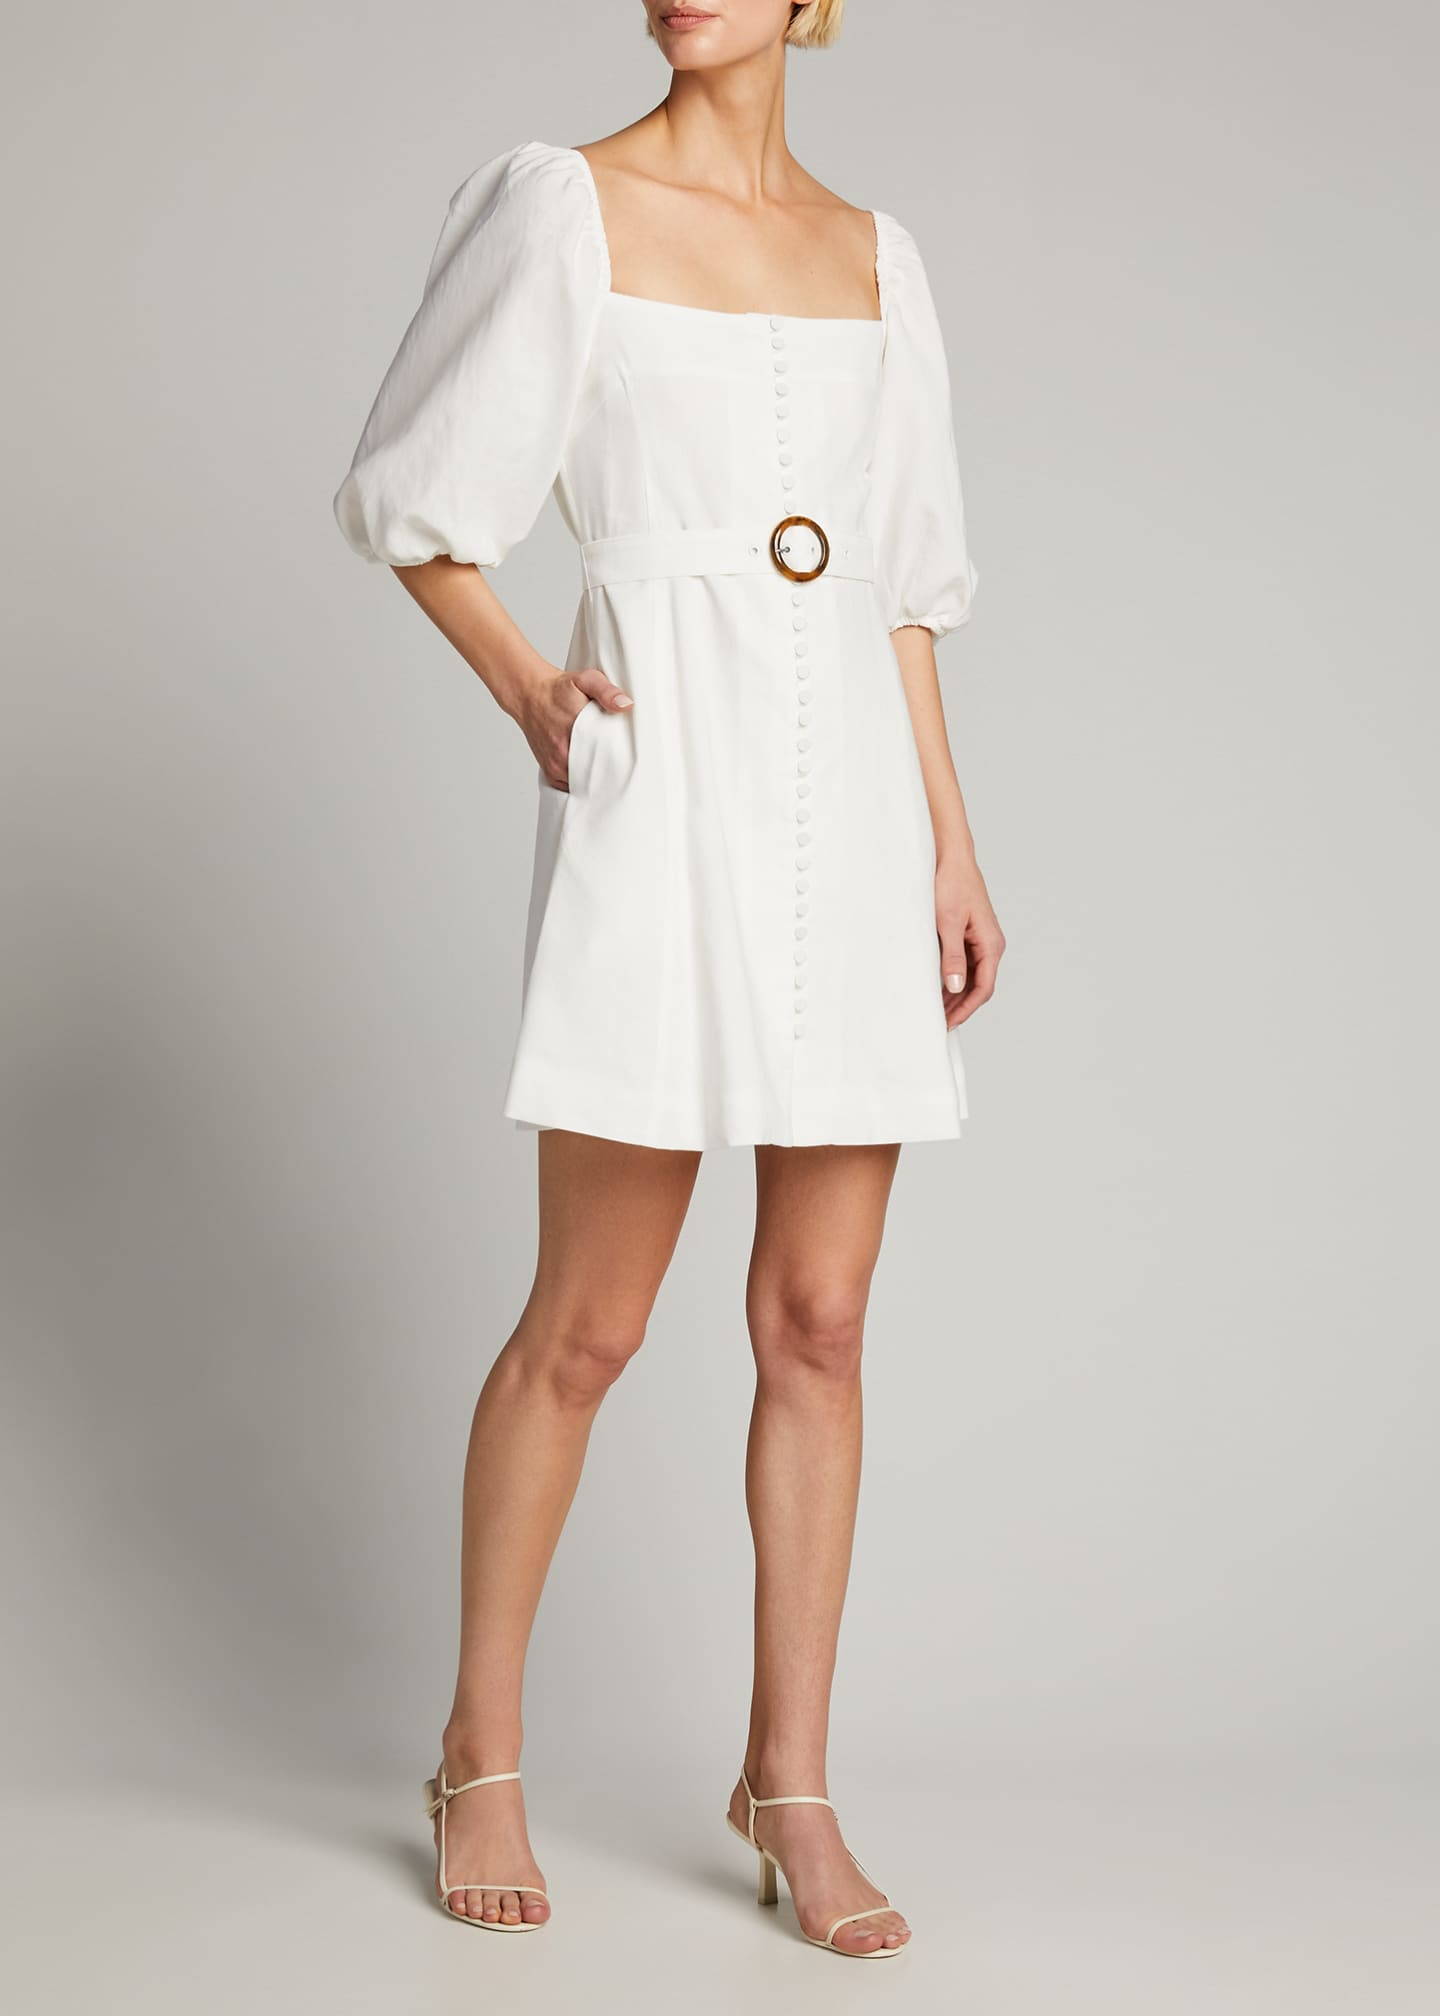 Image 1 of 4: Emery Belted Stretch Linen Mini Dress